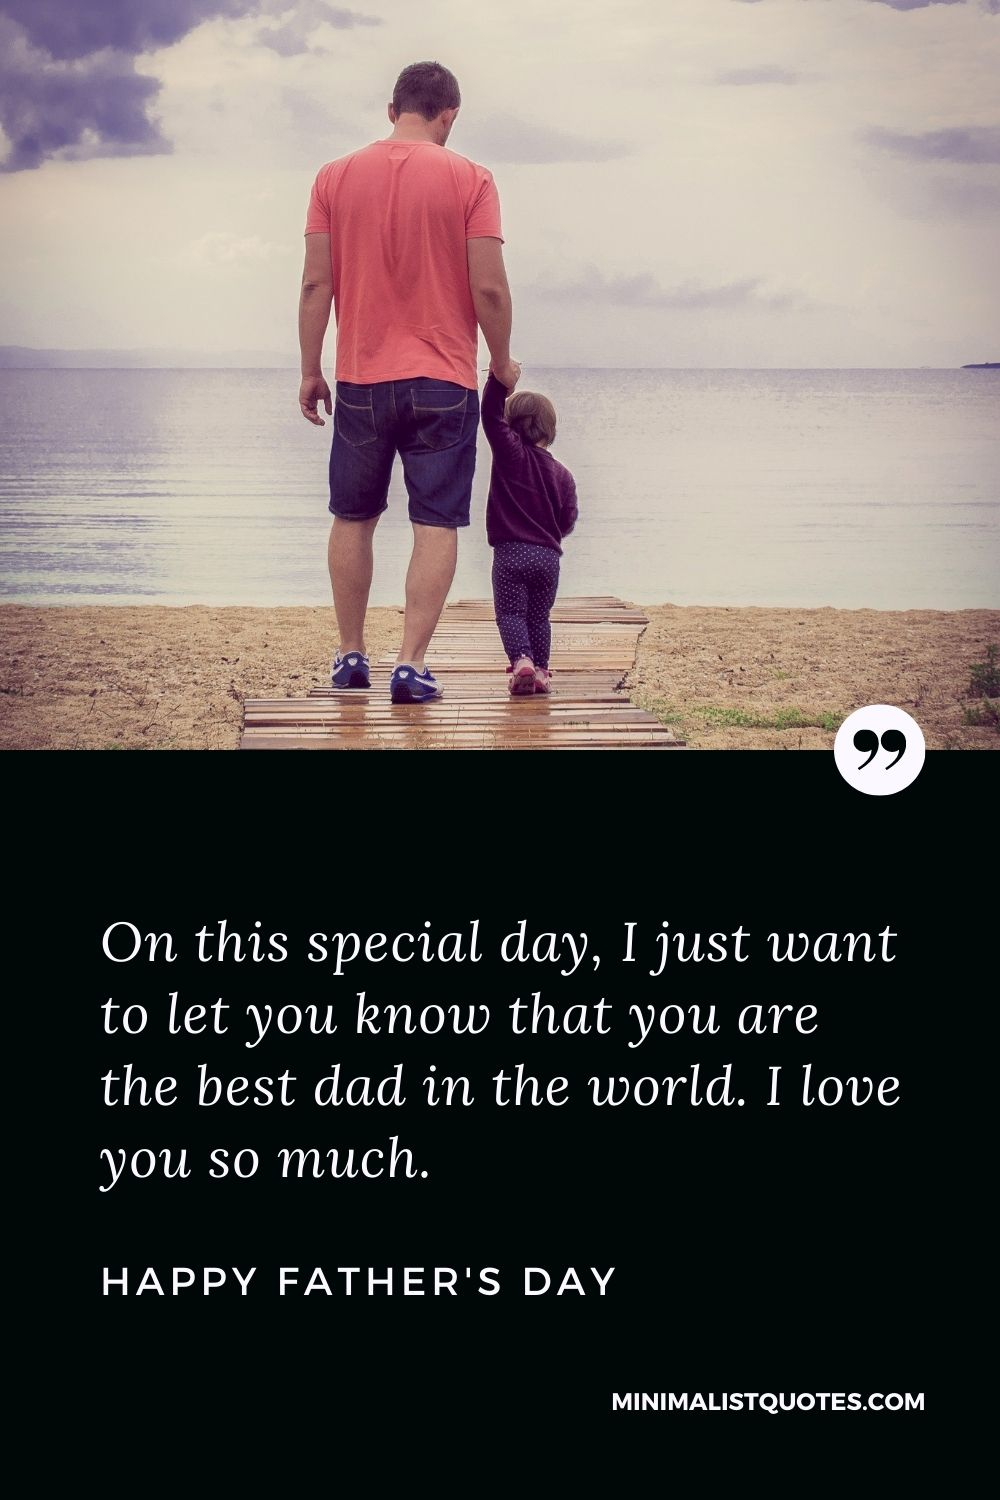 Father's Day wish, message & quote with HD image: On this special day, I just want to let you know that you are the best dad in the world. I love you so much. Happy Father's Day!